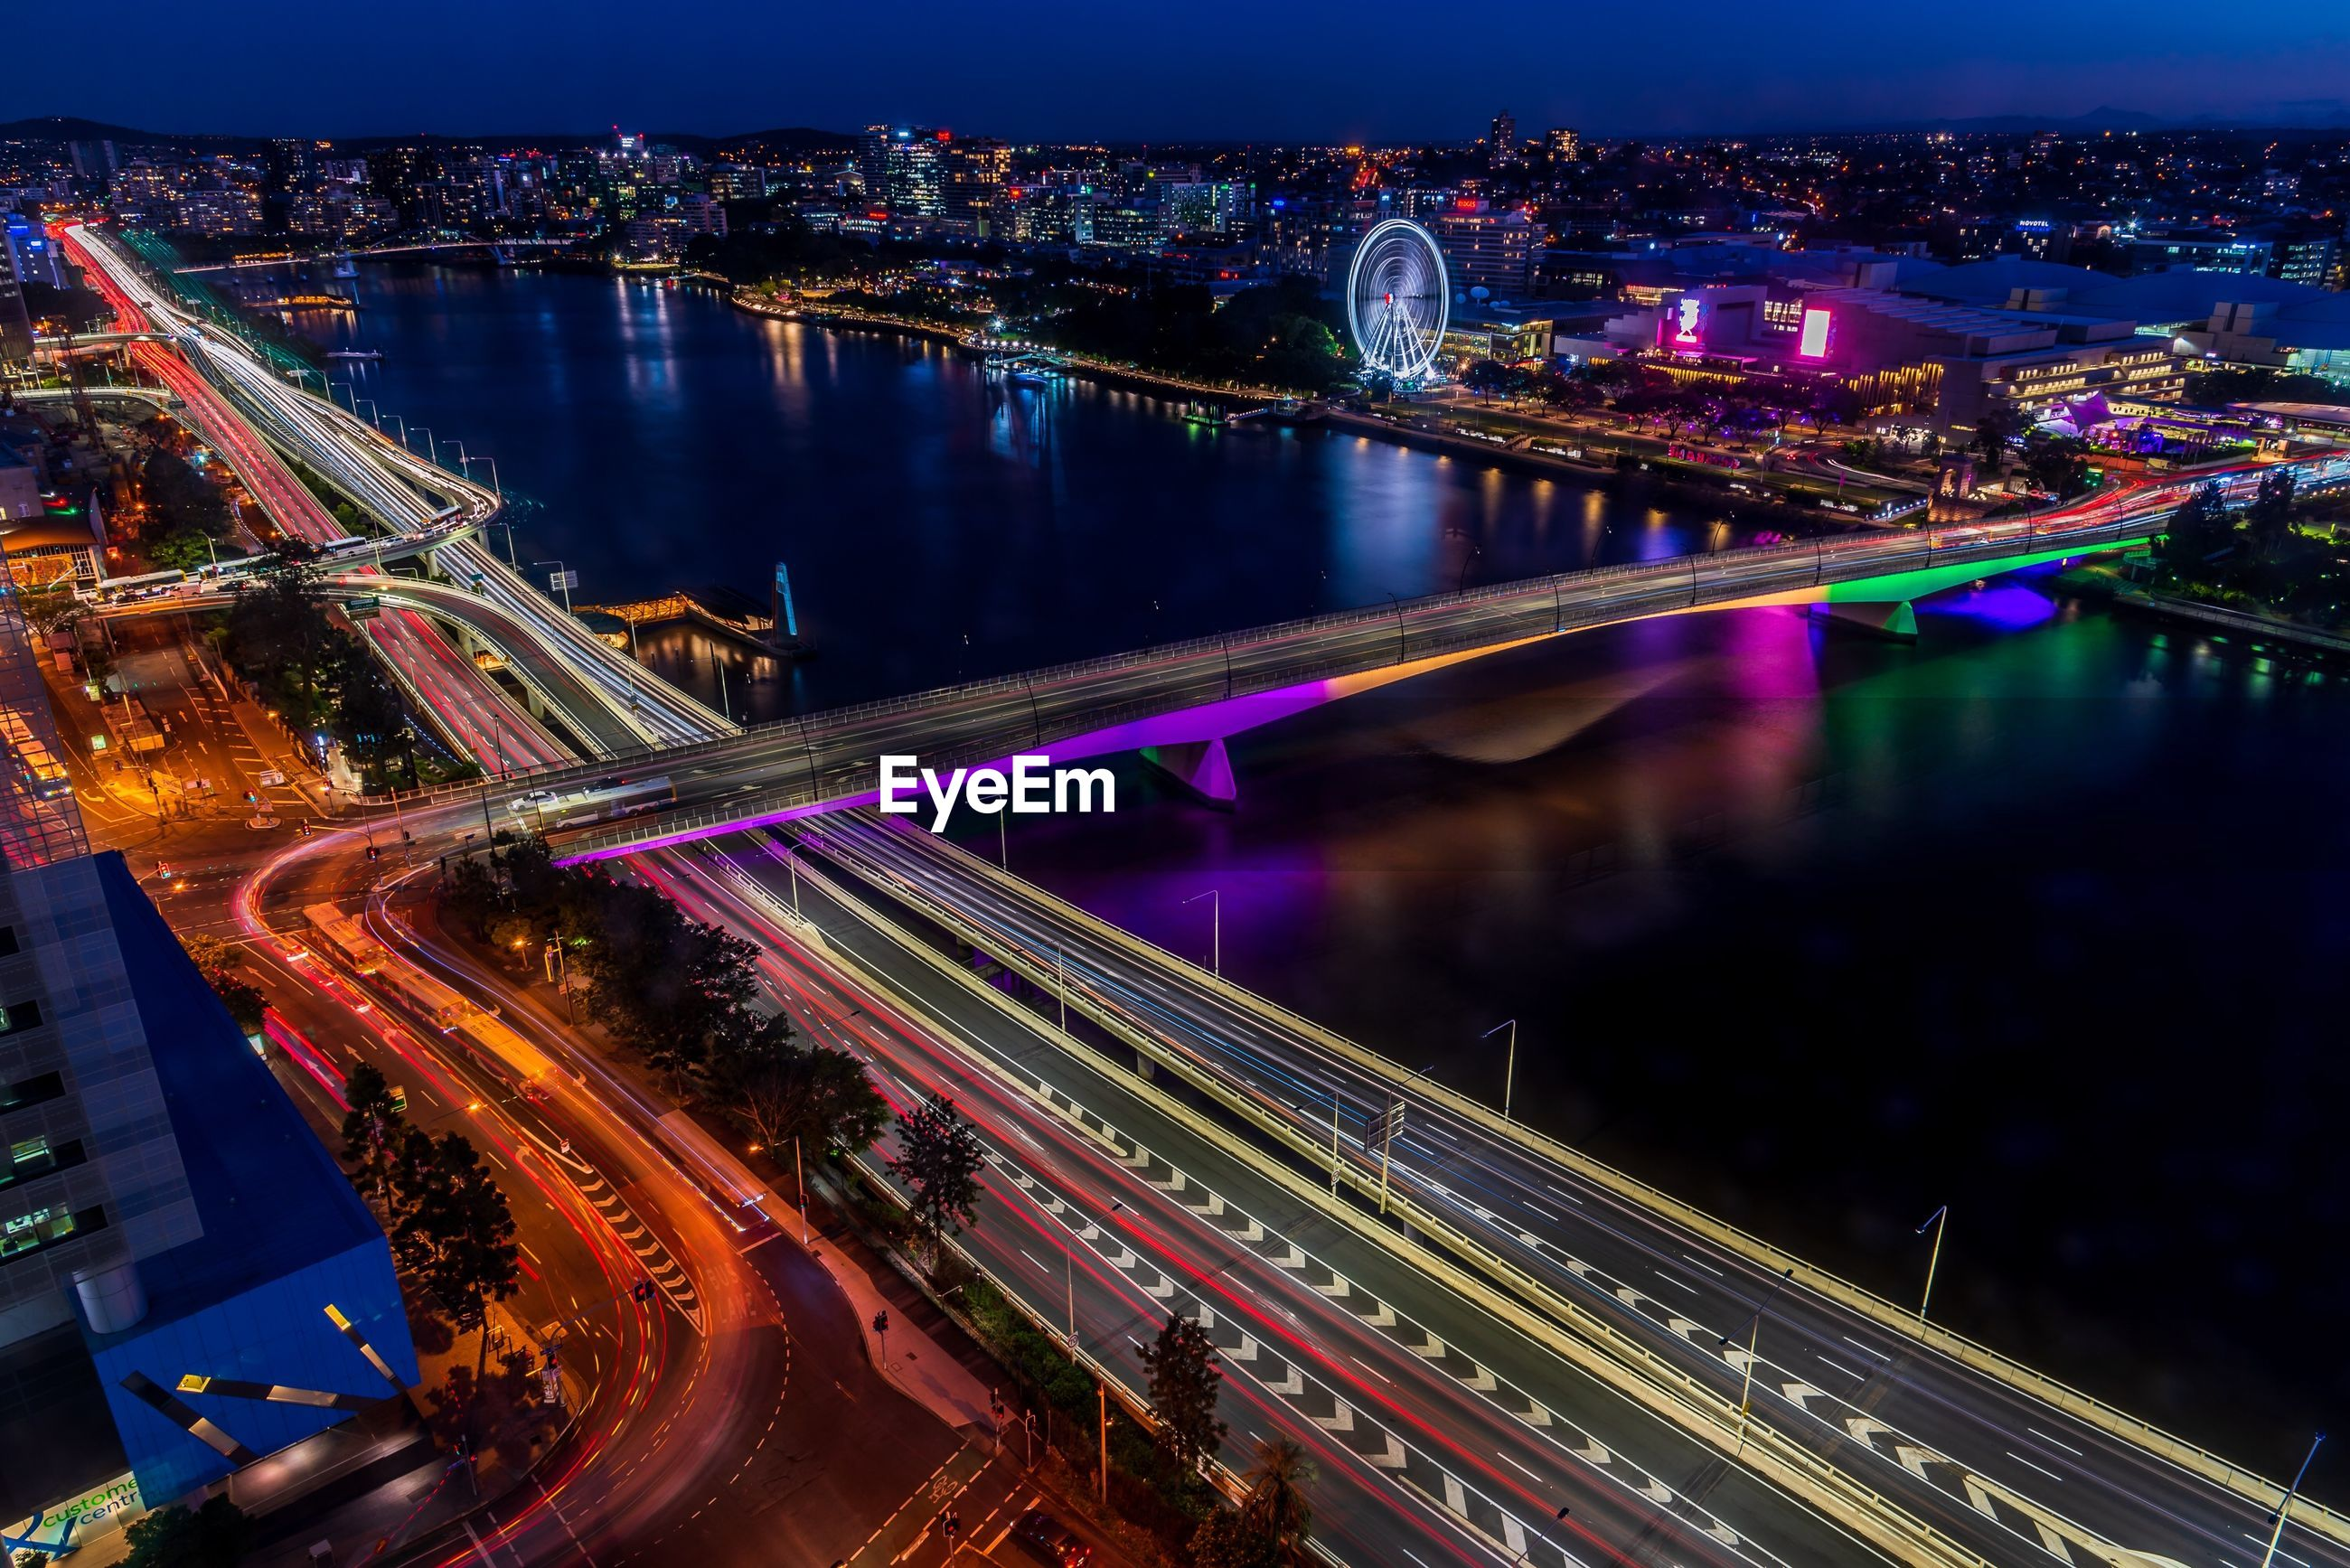 Aerial view of illuminated light trails on bridge in city at night